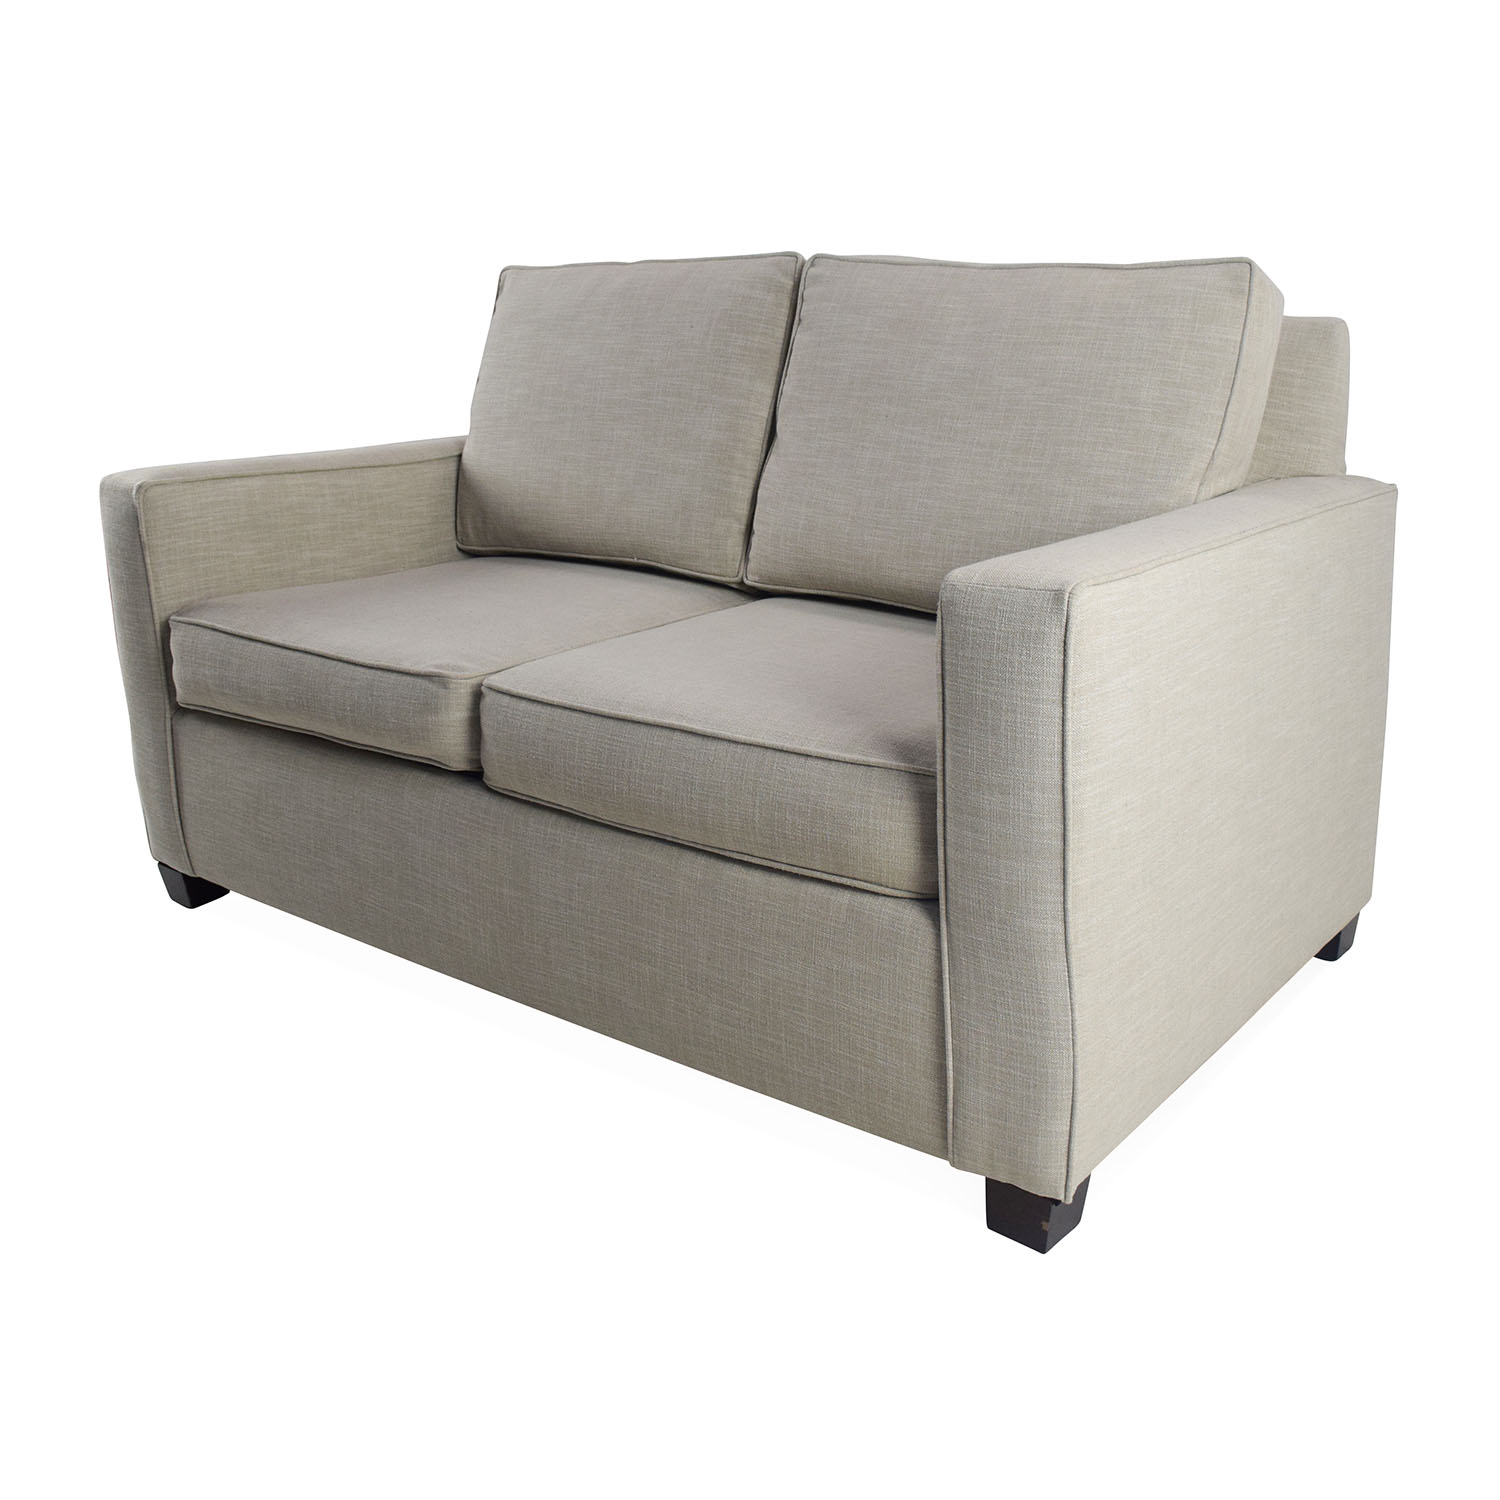 west elm sofa sleeper bed pull out frame 57 off henry sofas